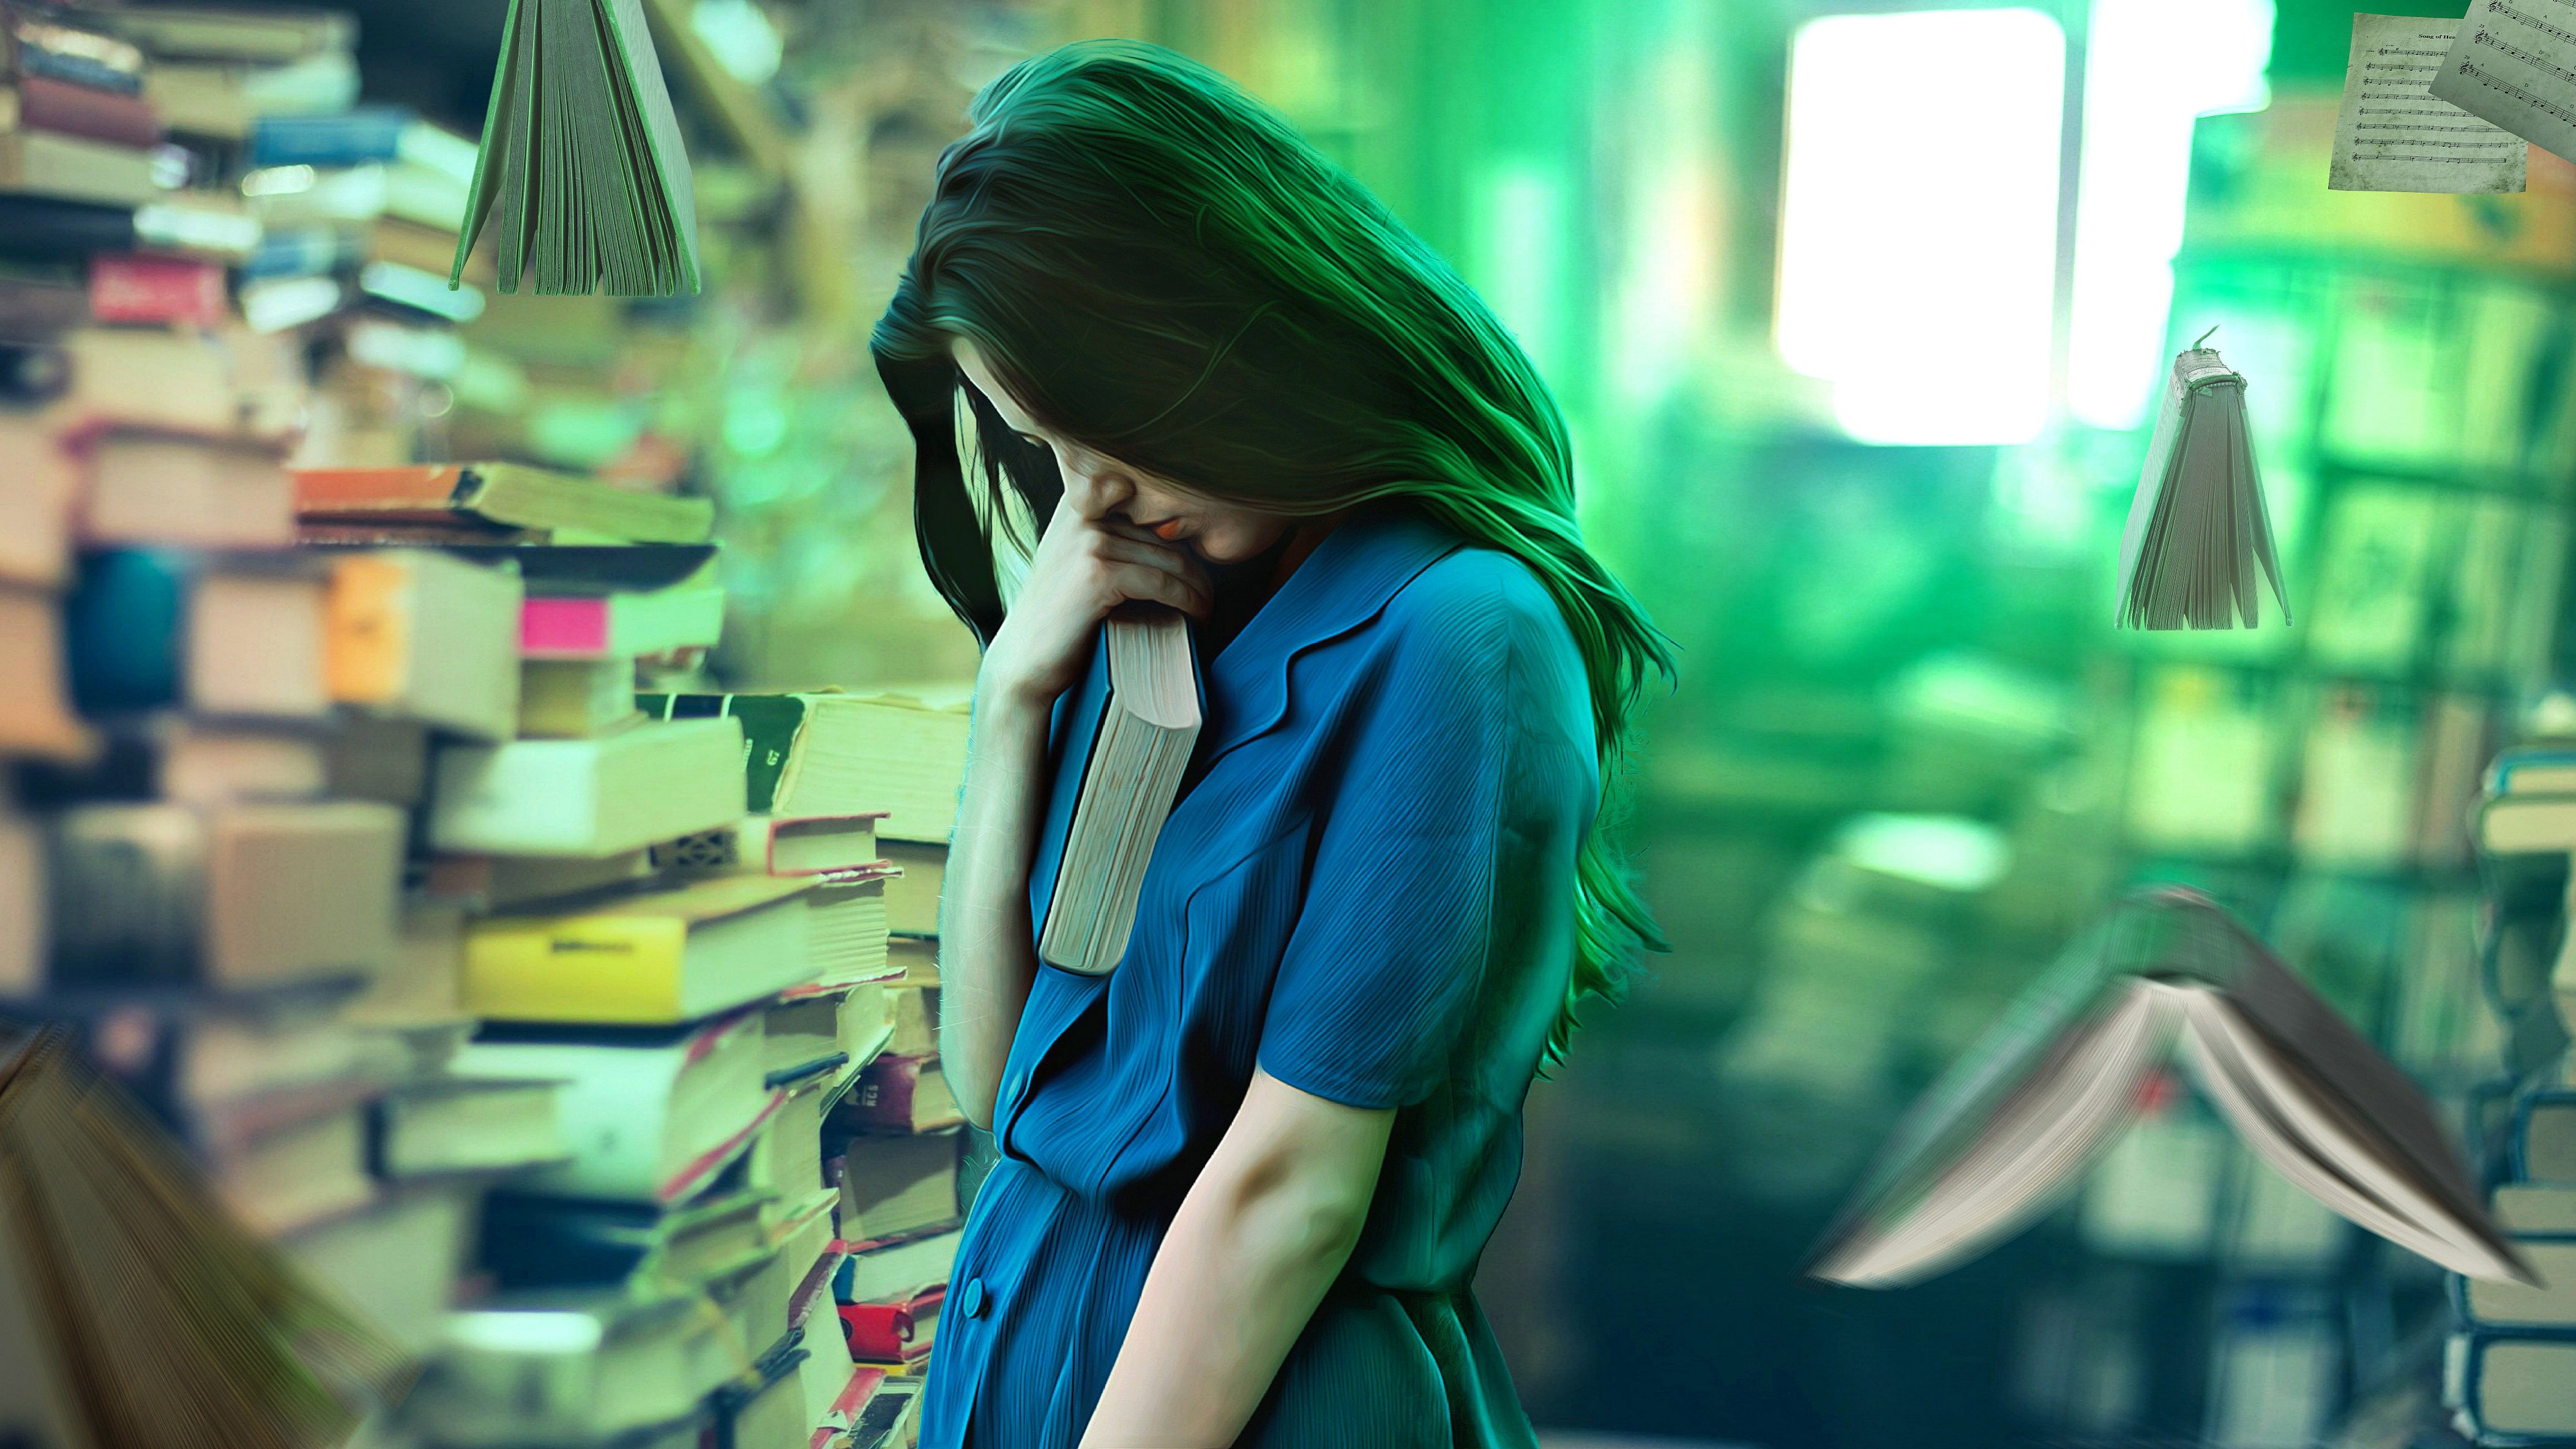 A lonely girl hugs her book in a bookstore as other books fly around her like birds.